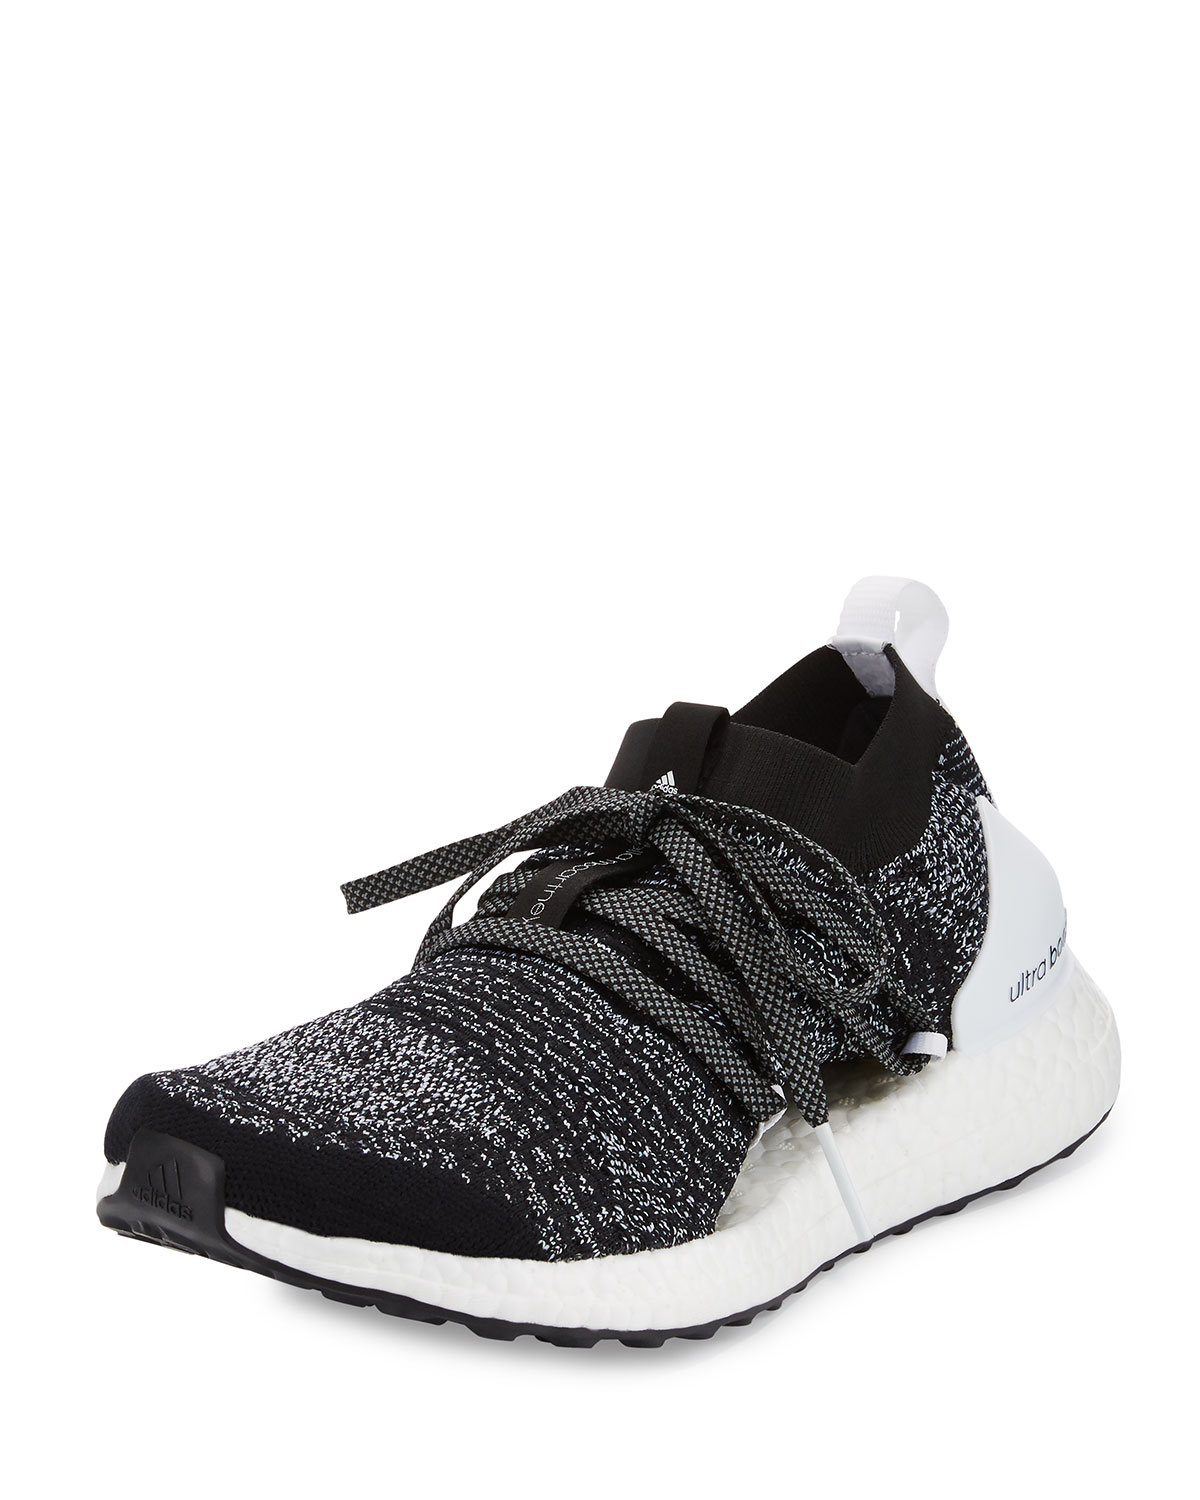 c3f653e70 adidas by Stella McCartney Ultra Boost X Knit Sneaker